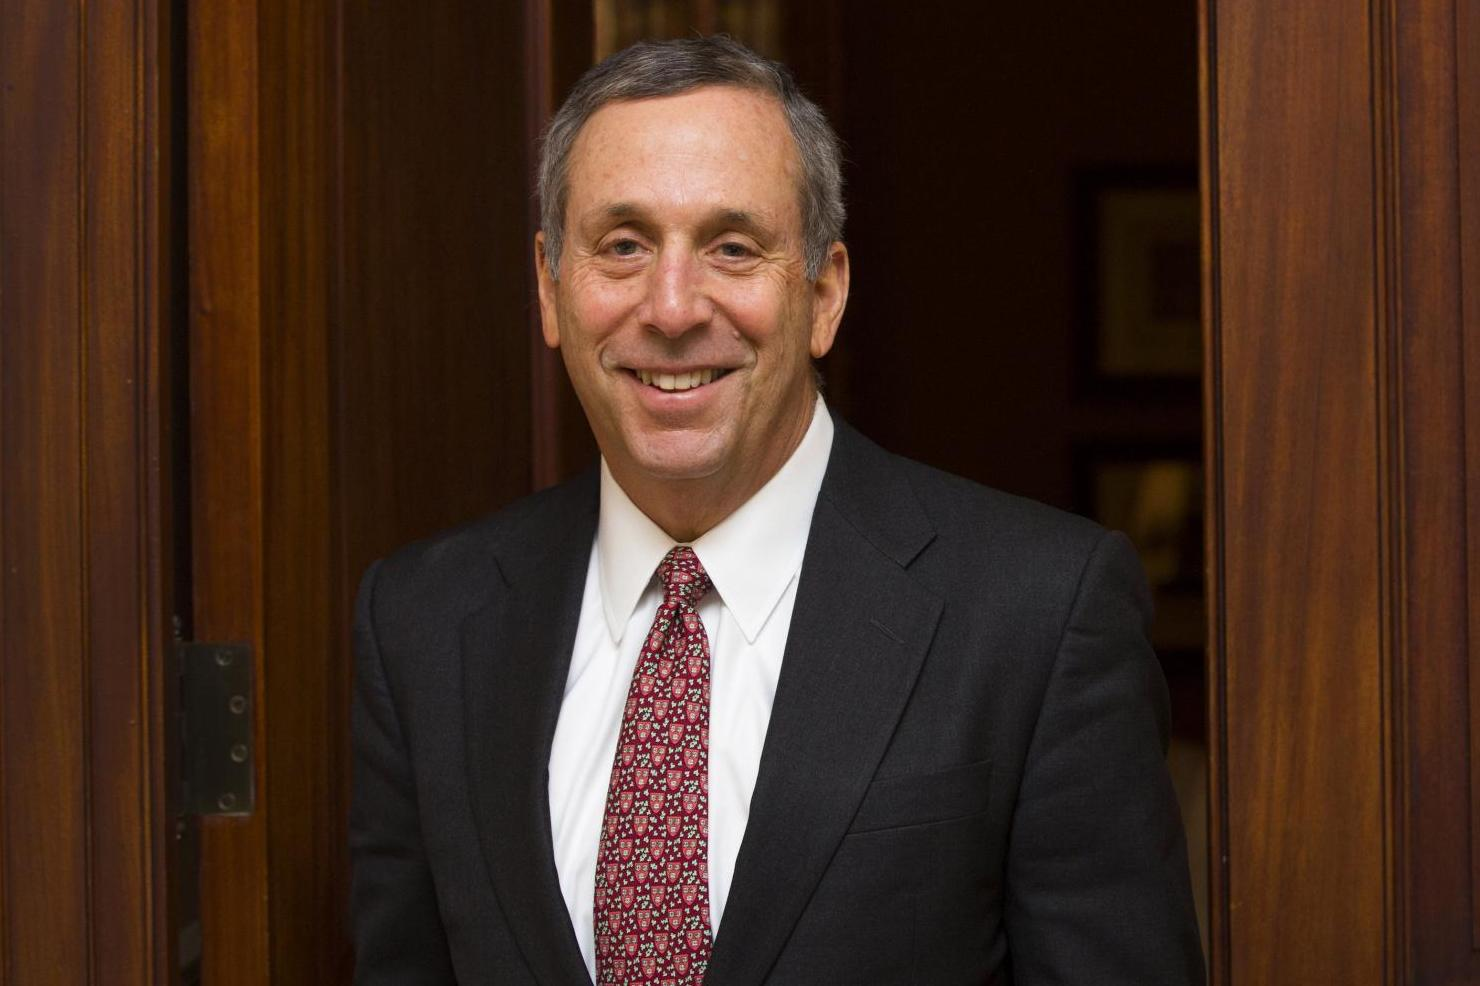 Lawrence Bacow